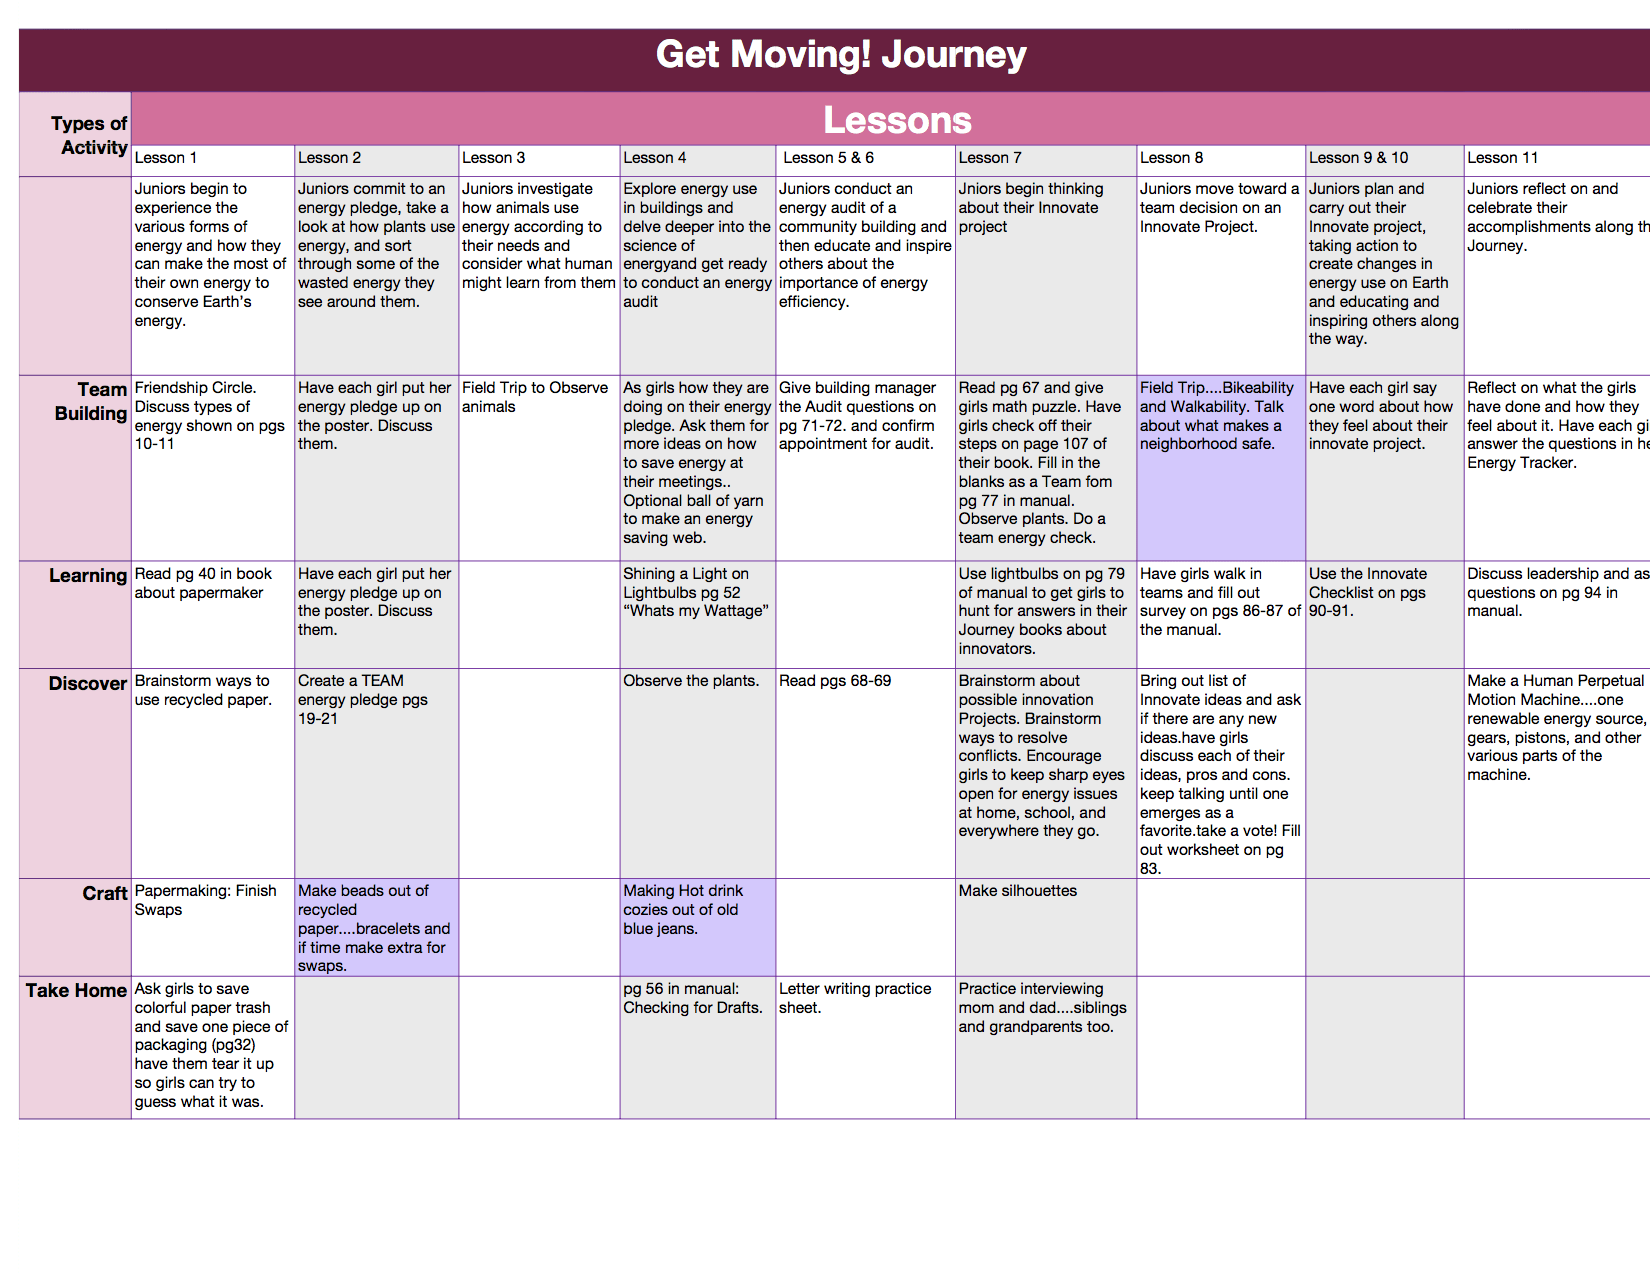 An Outline Of The Get Moving Journey And Skill Badges The Shaded Areas Are Overlaps With The